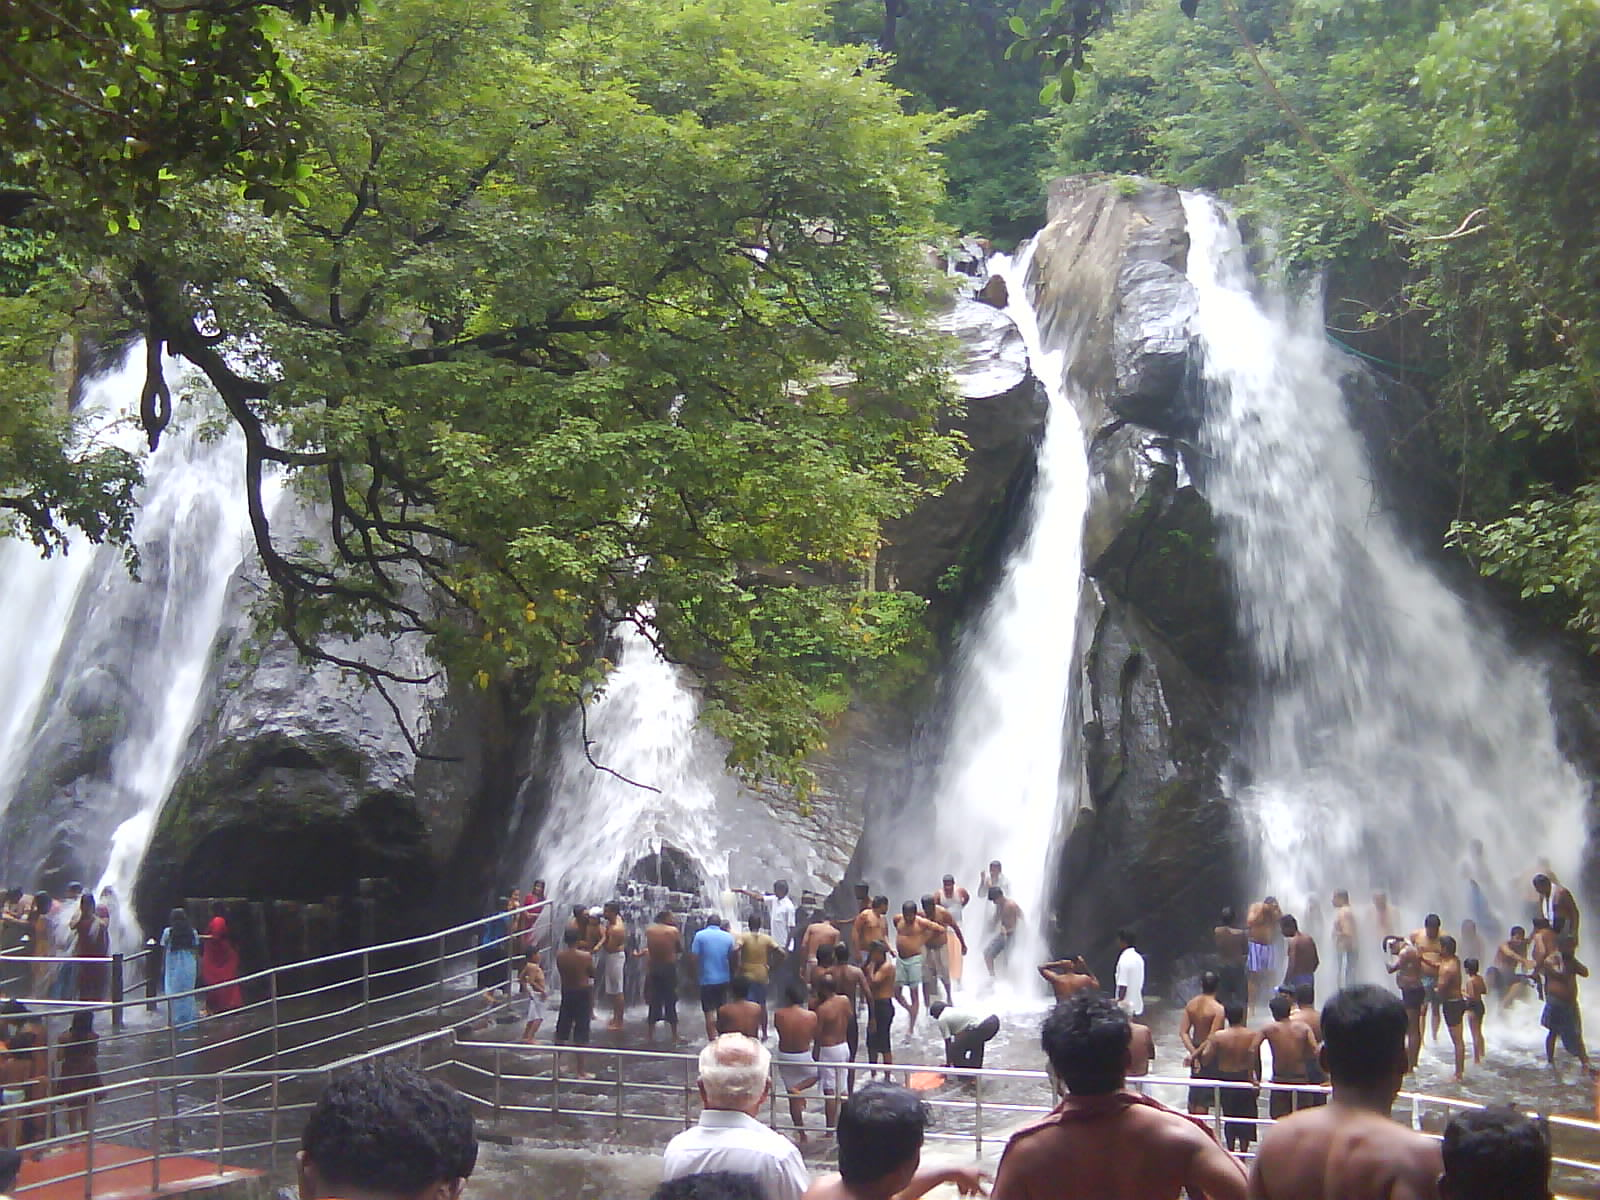 Hire a car and driver in Courtallam